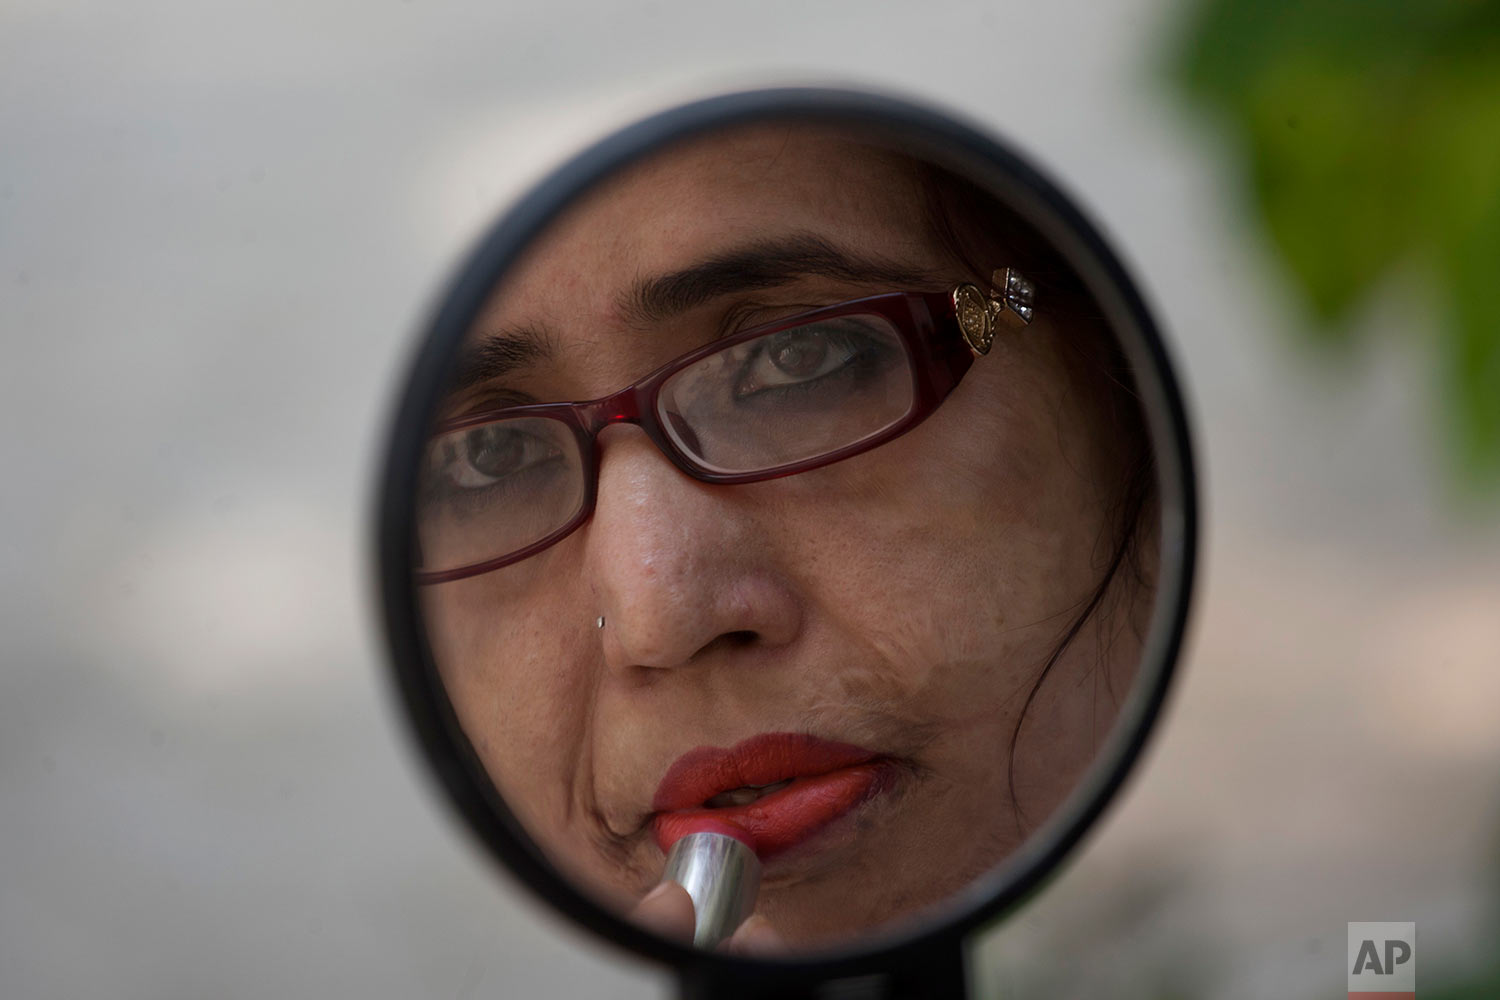 Pakistani acid attack victim Rukhsana Sharafuddin gets ready to attend a gathering at an NGO office to mark the International Women's Day in Karachi, Pakistan, Wednesday, March 8, 2017. (AP Photo/Shakil Adil)